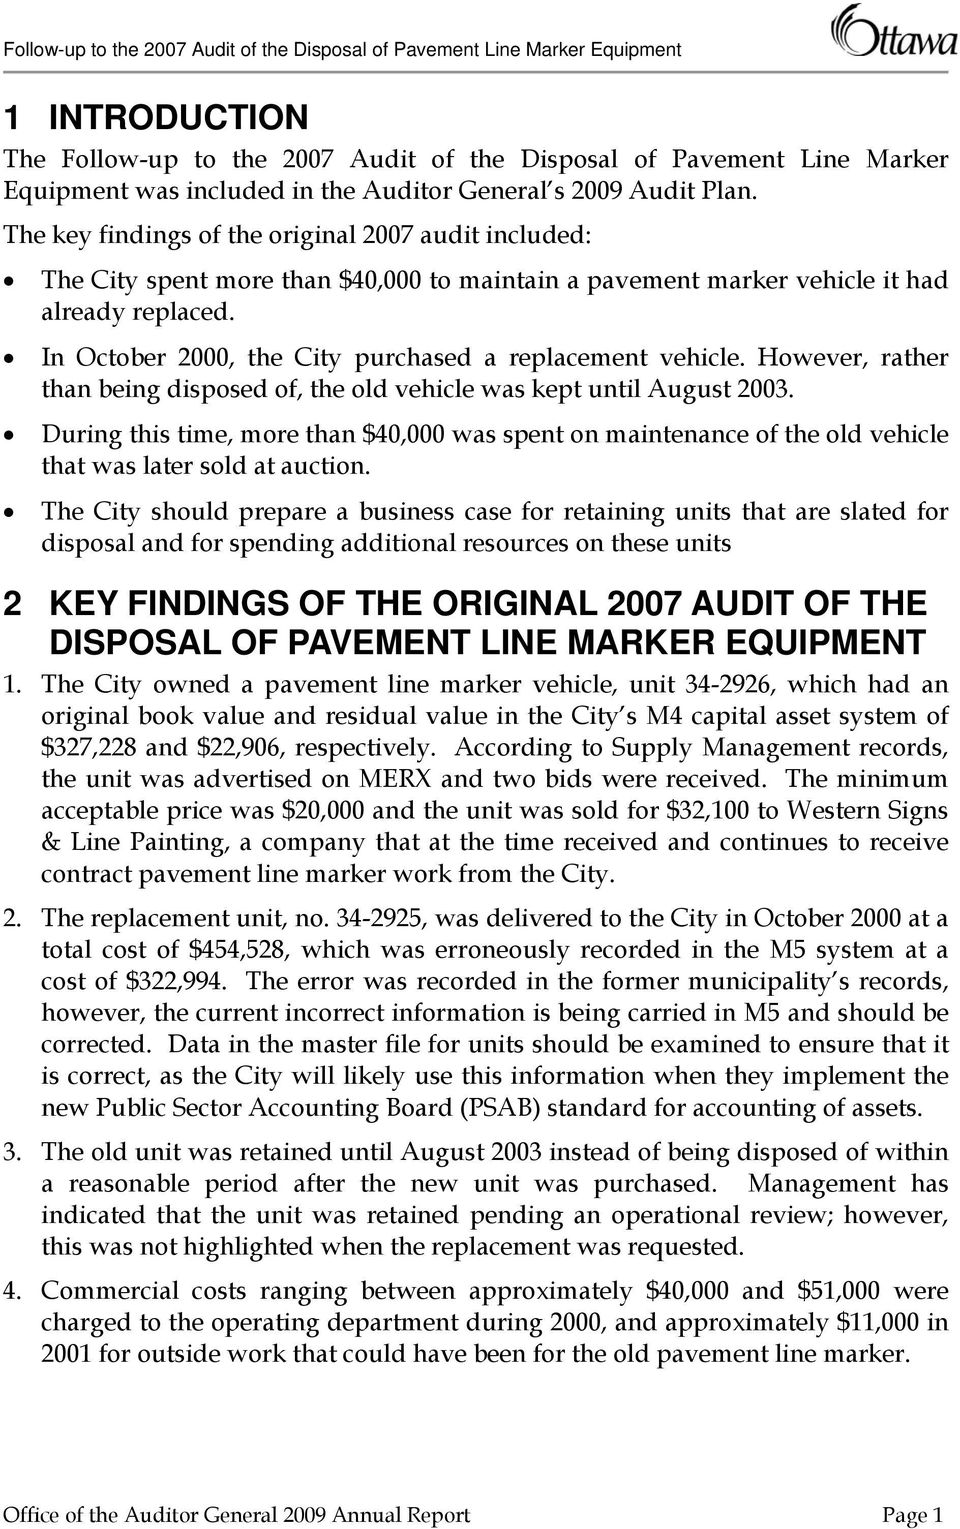 In October 2000, the City purchased a replacement vehicle. However, rather than being disposed of, the old vehicle was kept until August 2003.